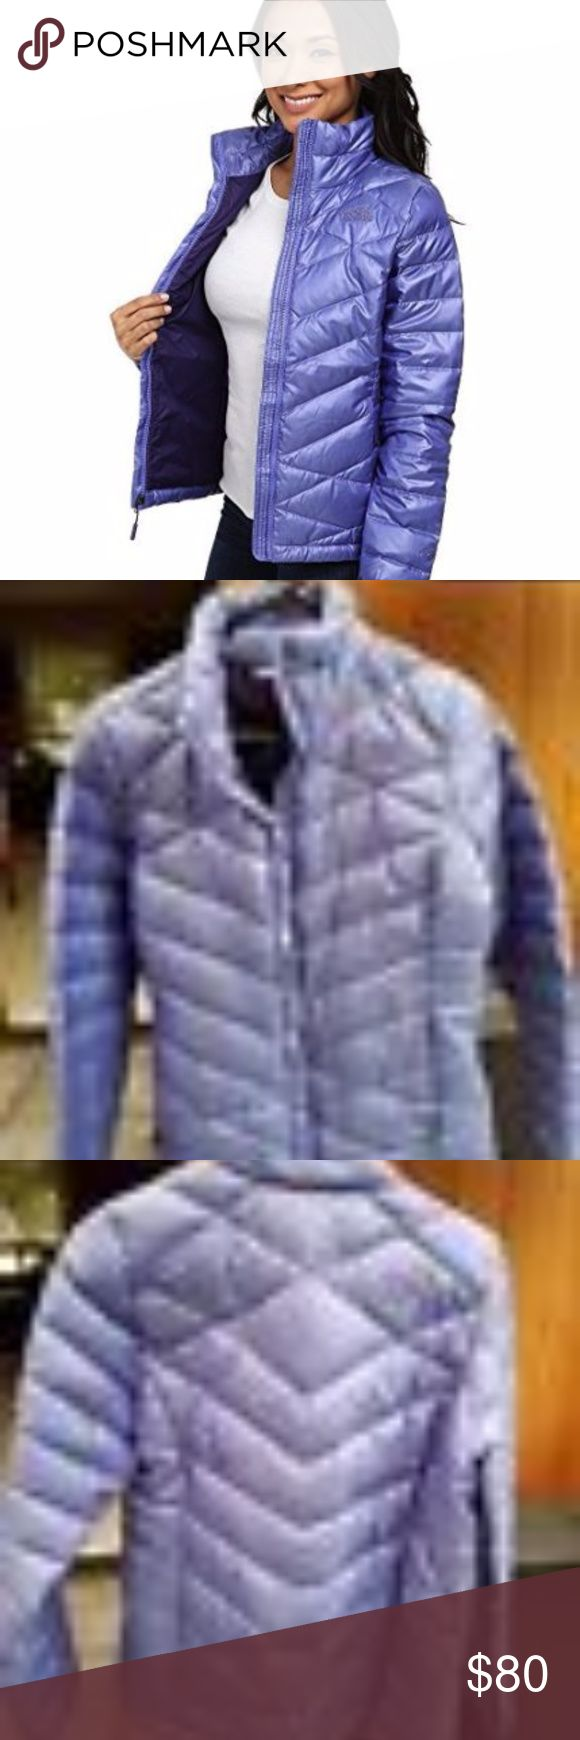 "NWOT North Face Aconcagua Down Jacket, Size M NWOT awesome North Face down jacket, women's medium in ""starry purple."" I've included stock photos and photos of specific jacket. MSRP was $160. This jacket is from last season (I ordered a diff size and love it!), so significantly discounted here! Email with questions! Thank you for looking!  SKU: #8533326 A luxurious down coat that keeps you warm throughout winter Brushed collar lining. Two secure-zip hand pockets. Full zip front. Shell: 83%…"